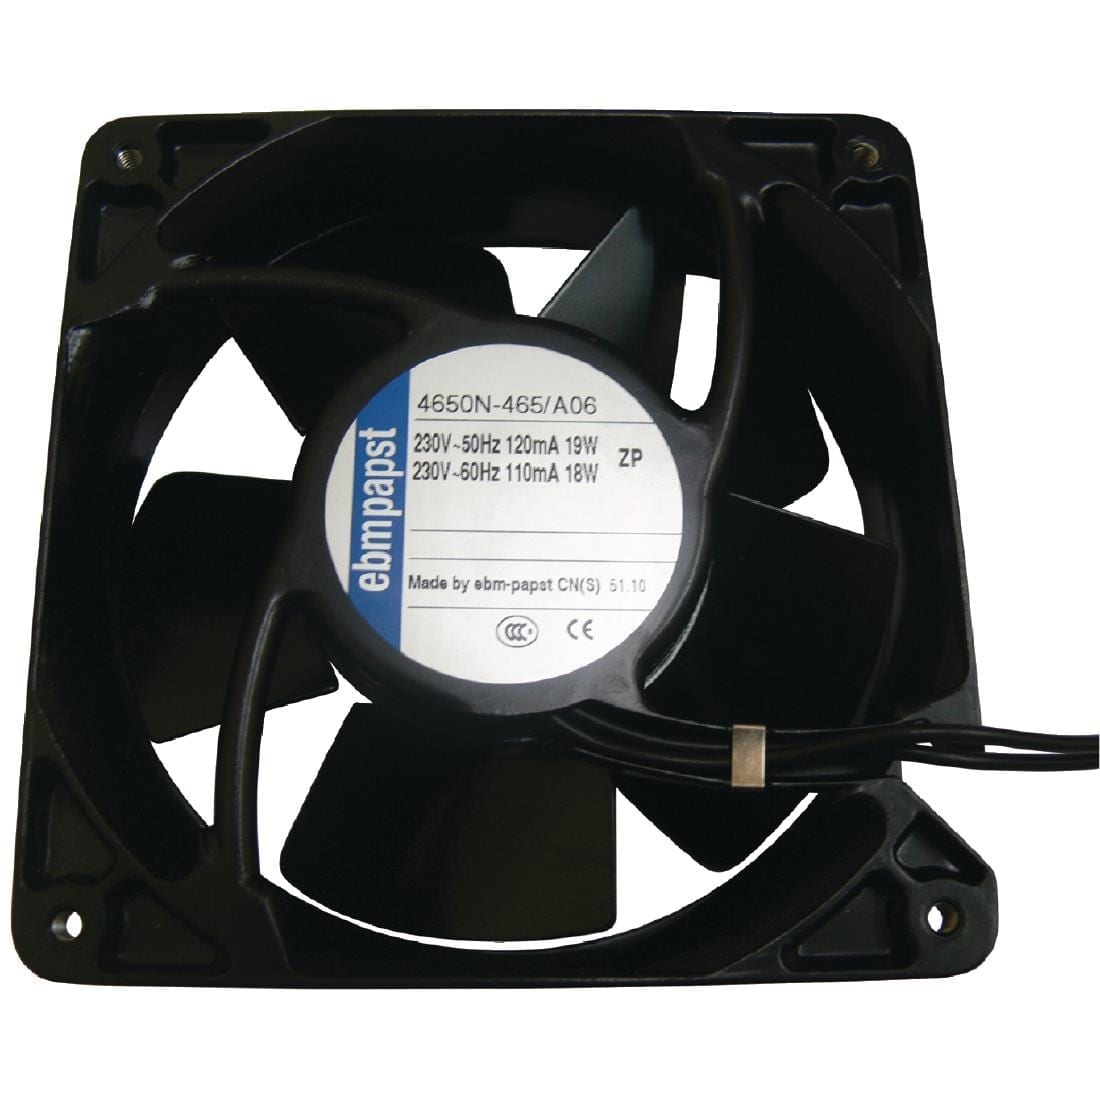 Replacement Evaporator Fan (4650N)(old refrigerant) for DL914 DL915 G377 G378 G379 G596 G597 G598 GD873 GD874